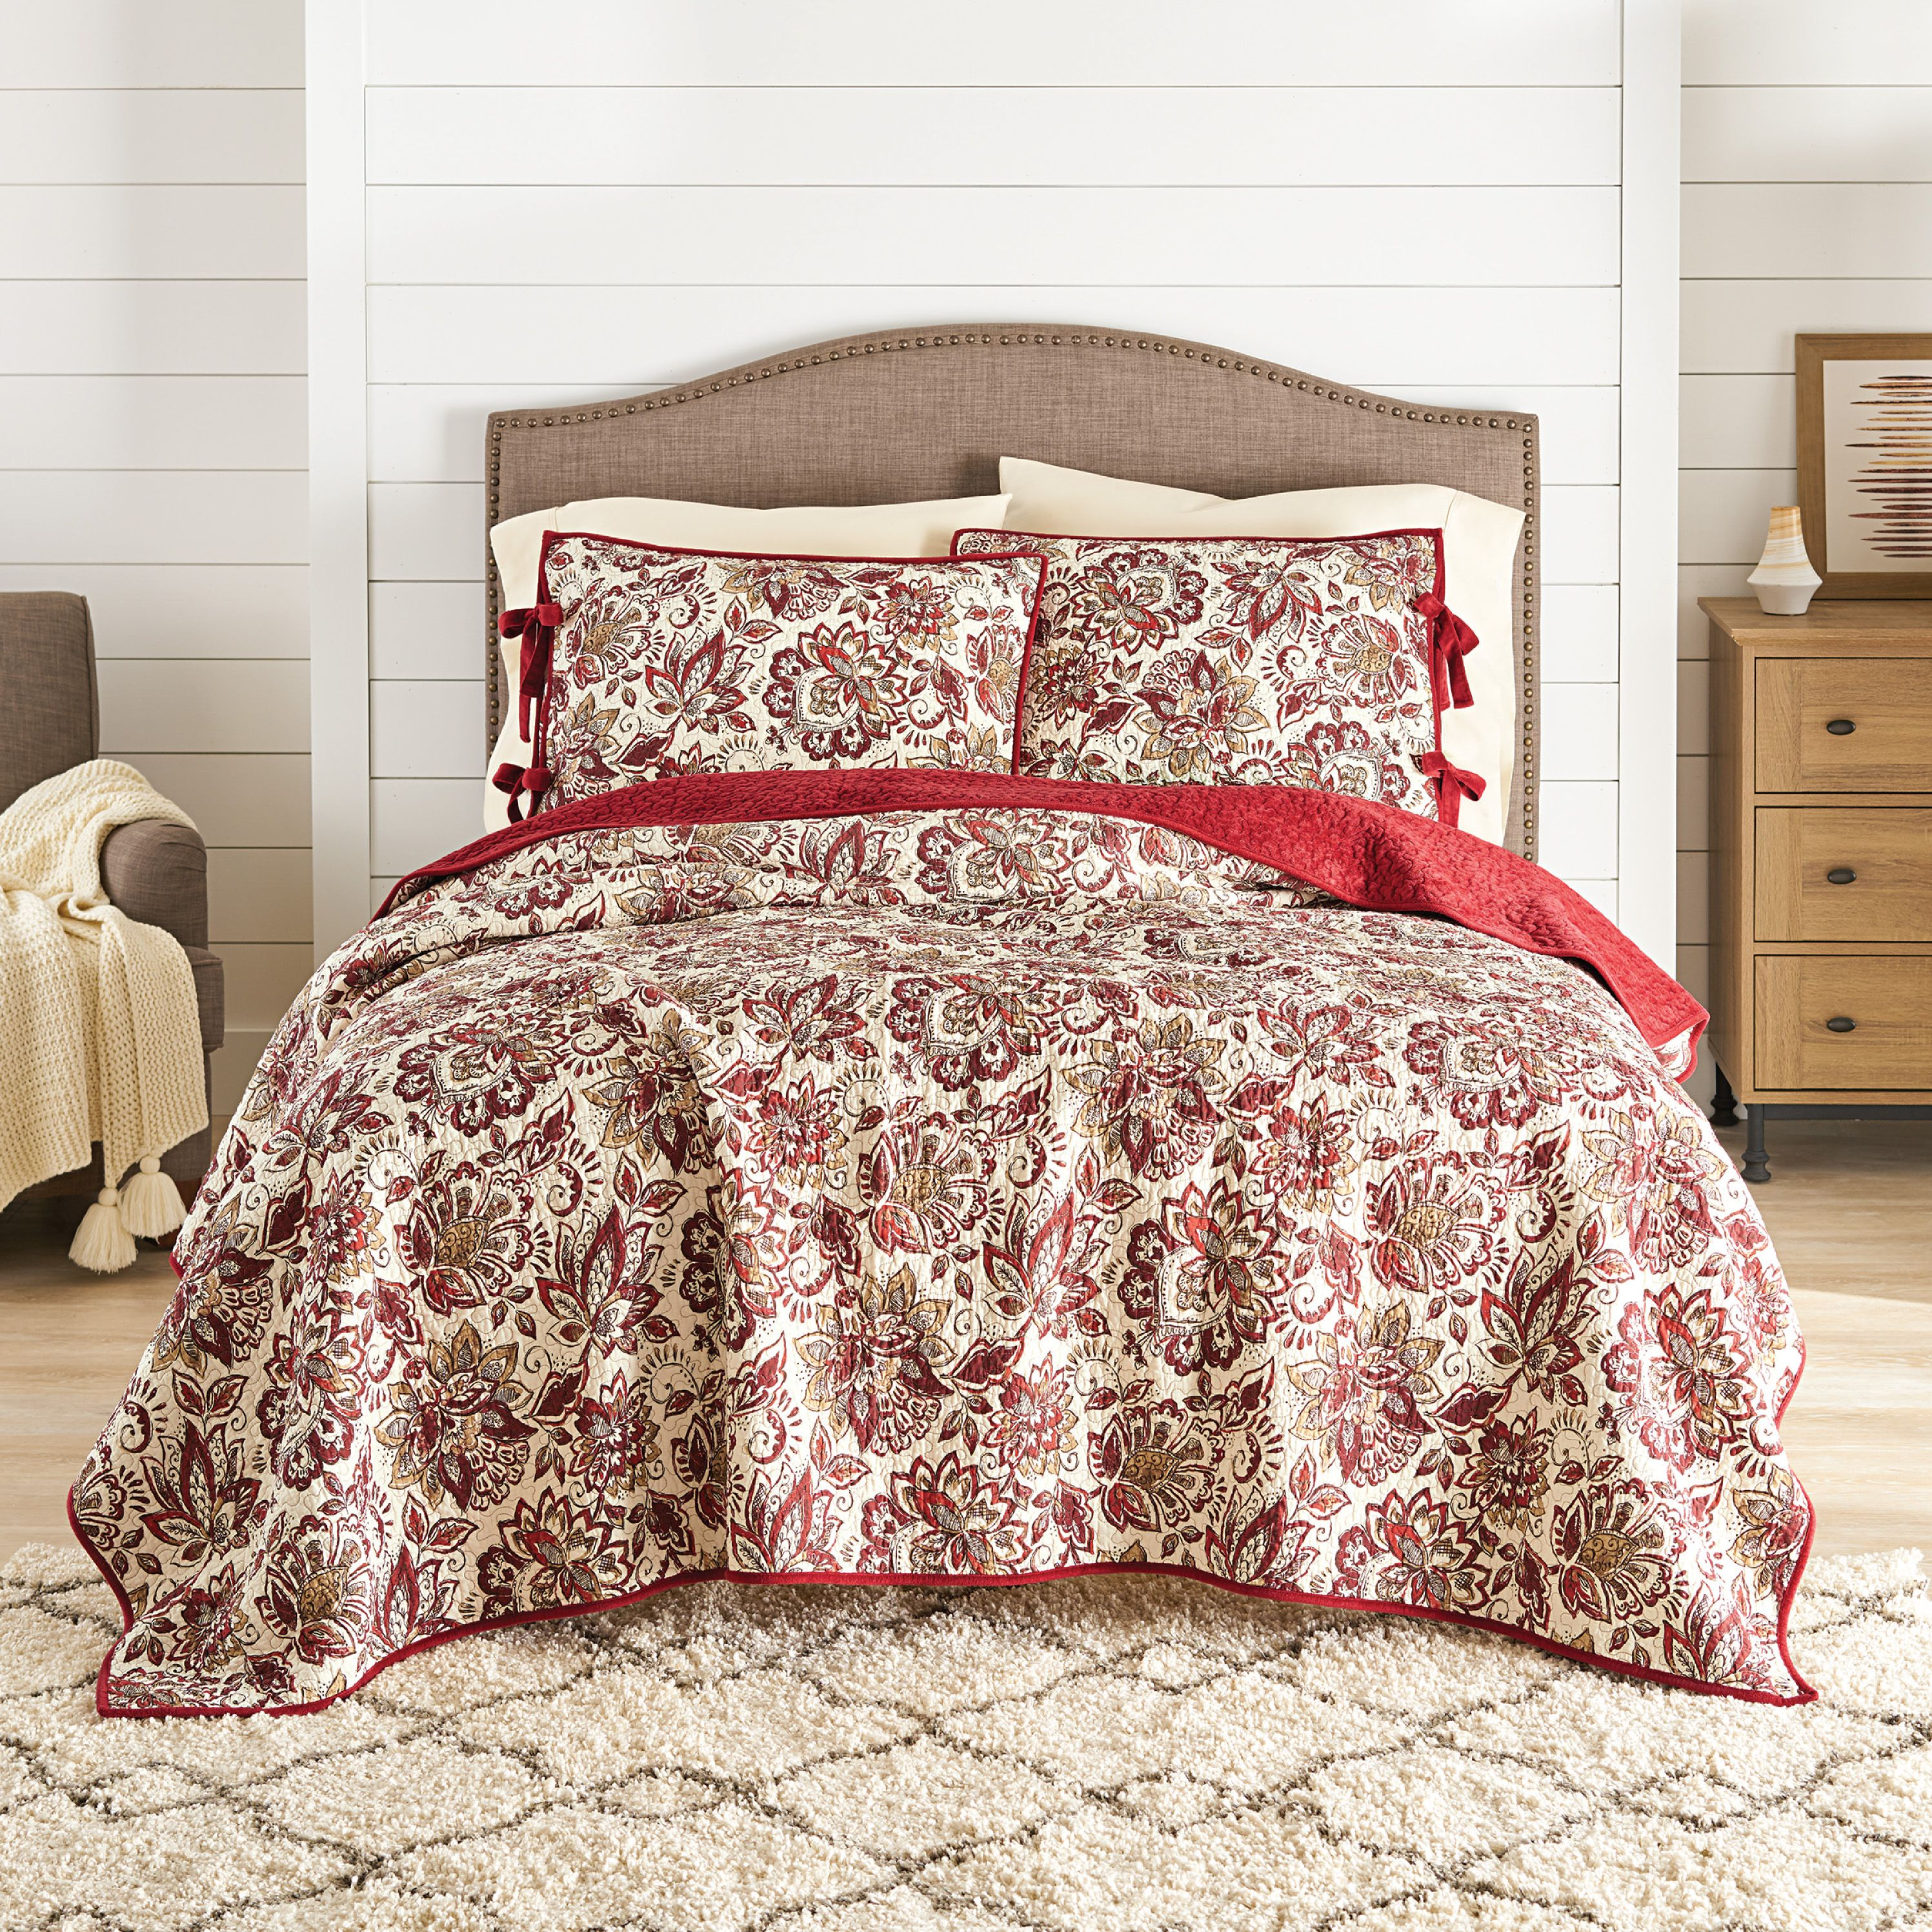 Better Homes and Gardens Spice Jacobean Velvet Quilt by Peking Handicraft Inc